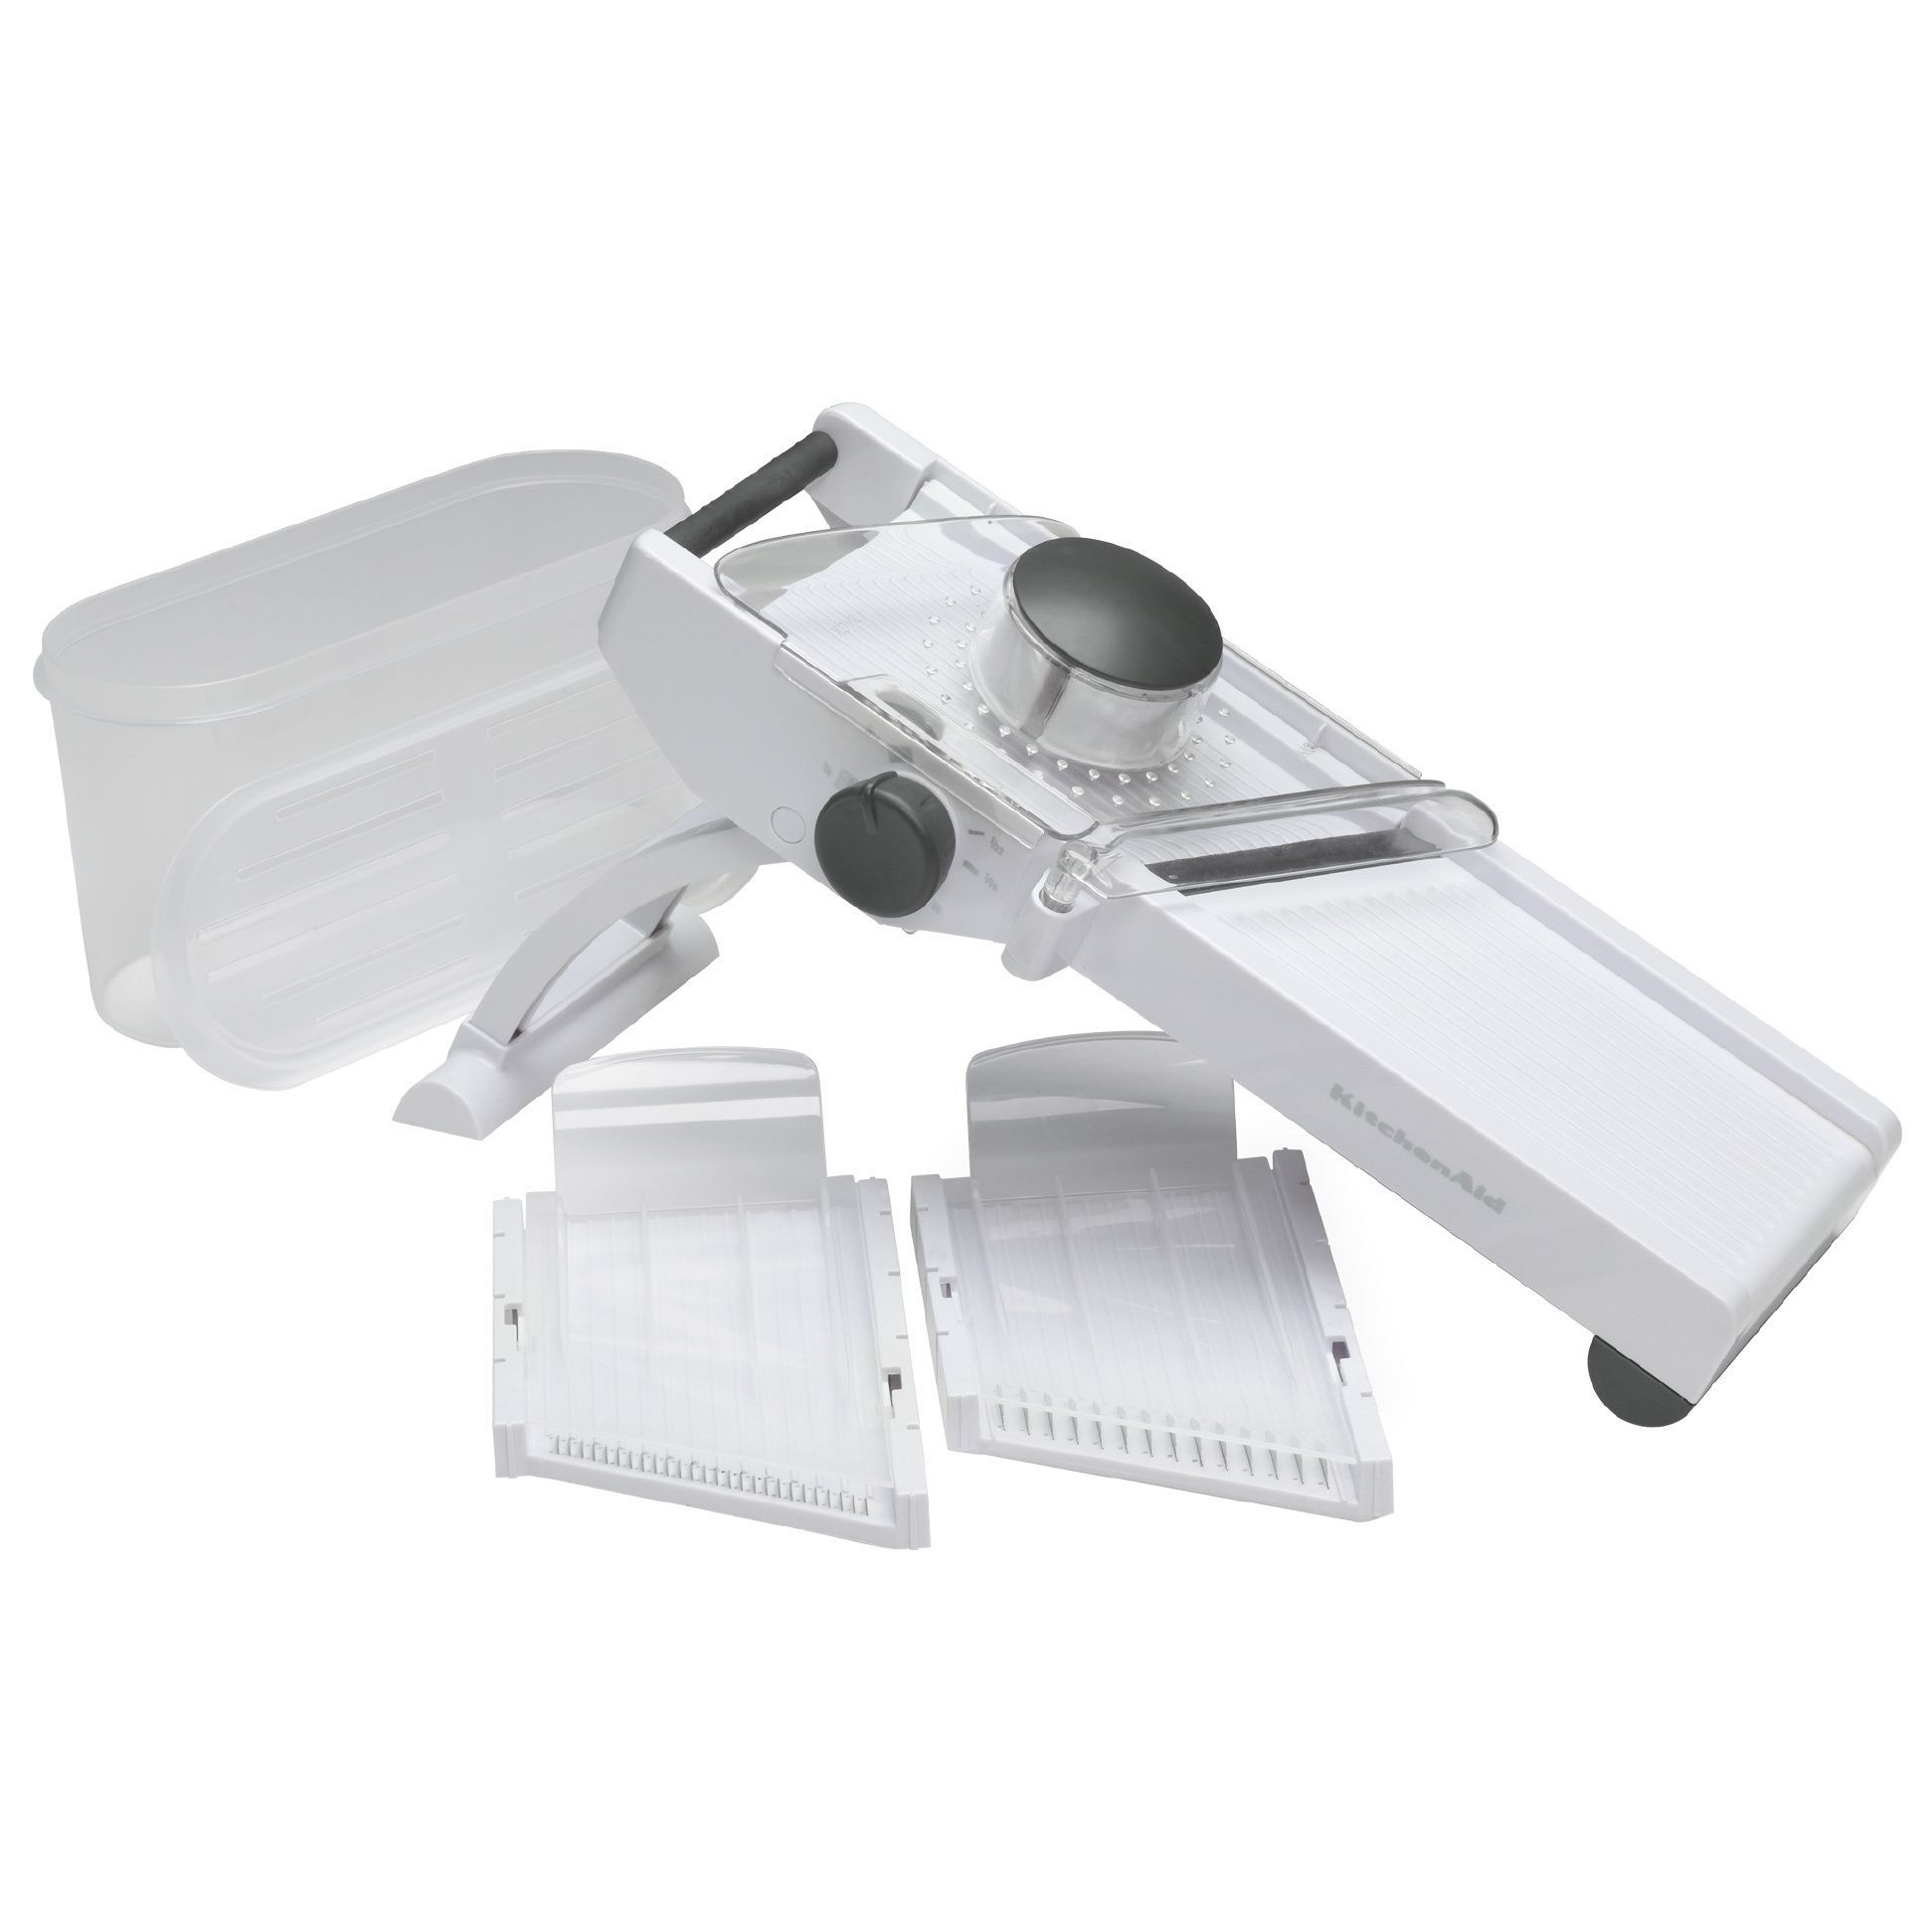 This Kitchenaid Mandoline Slicer With Its Razor Sharp Stainless Steel Blades Makes Quick Work Of Repeive Time Consuming Tasks Such As Making